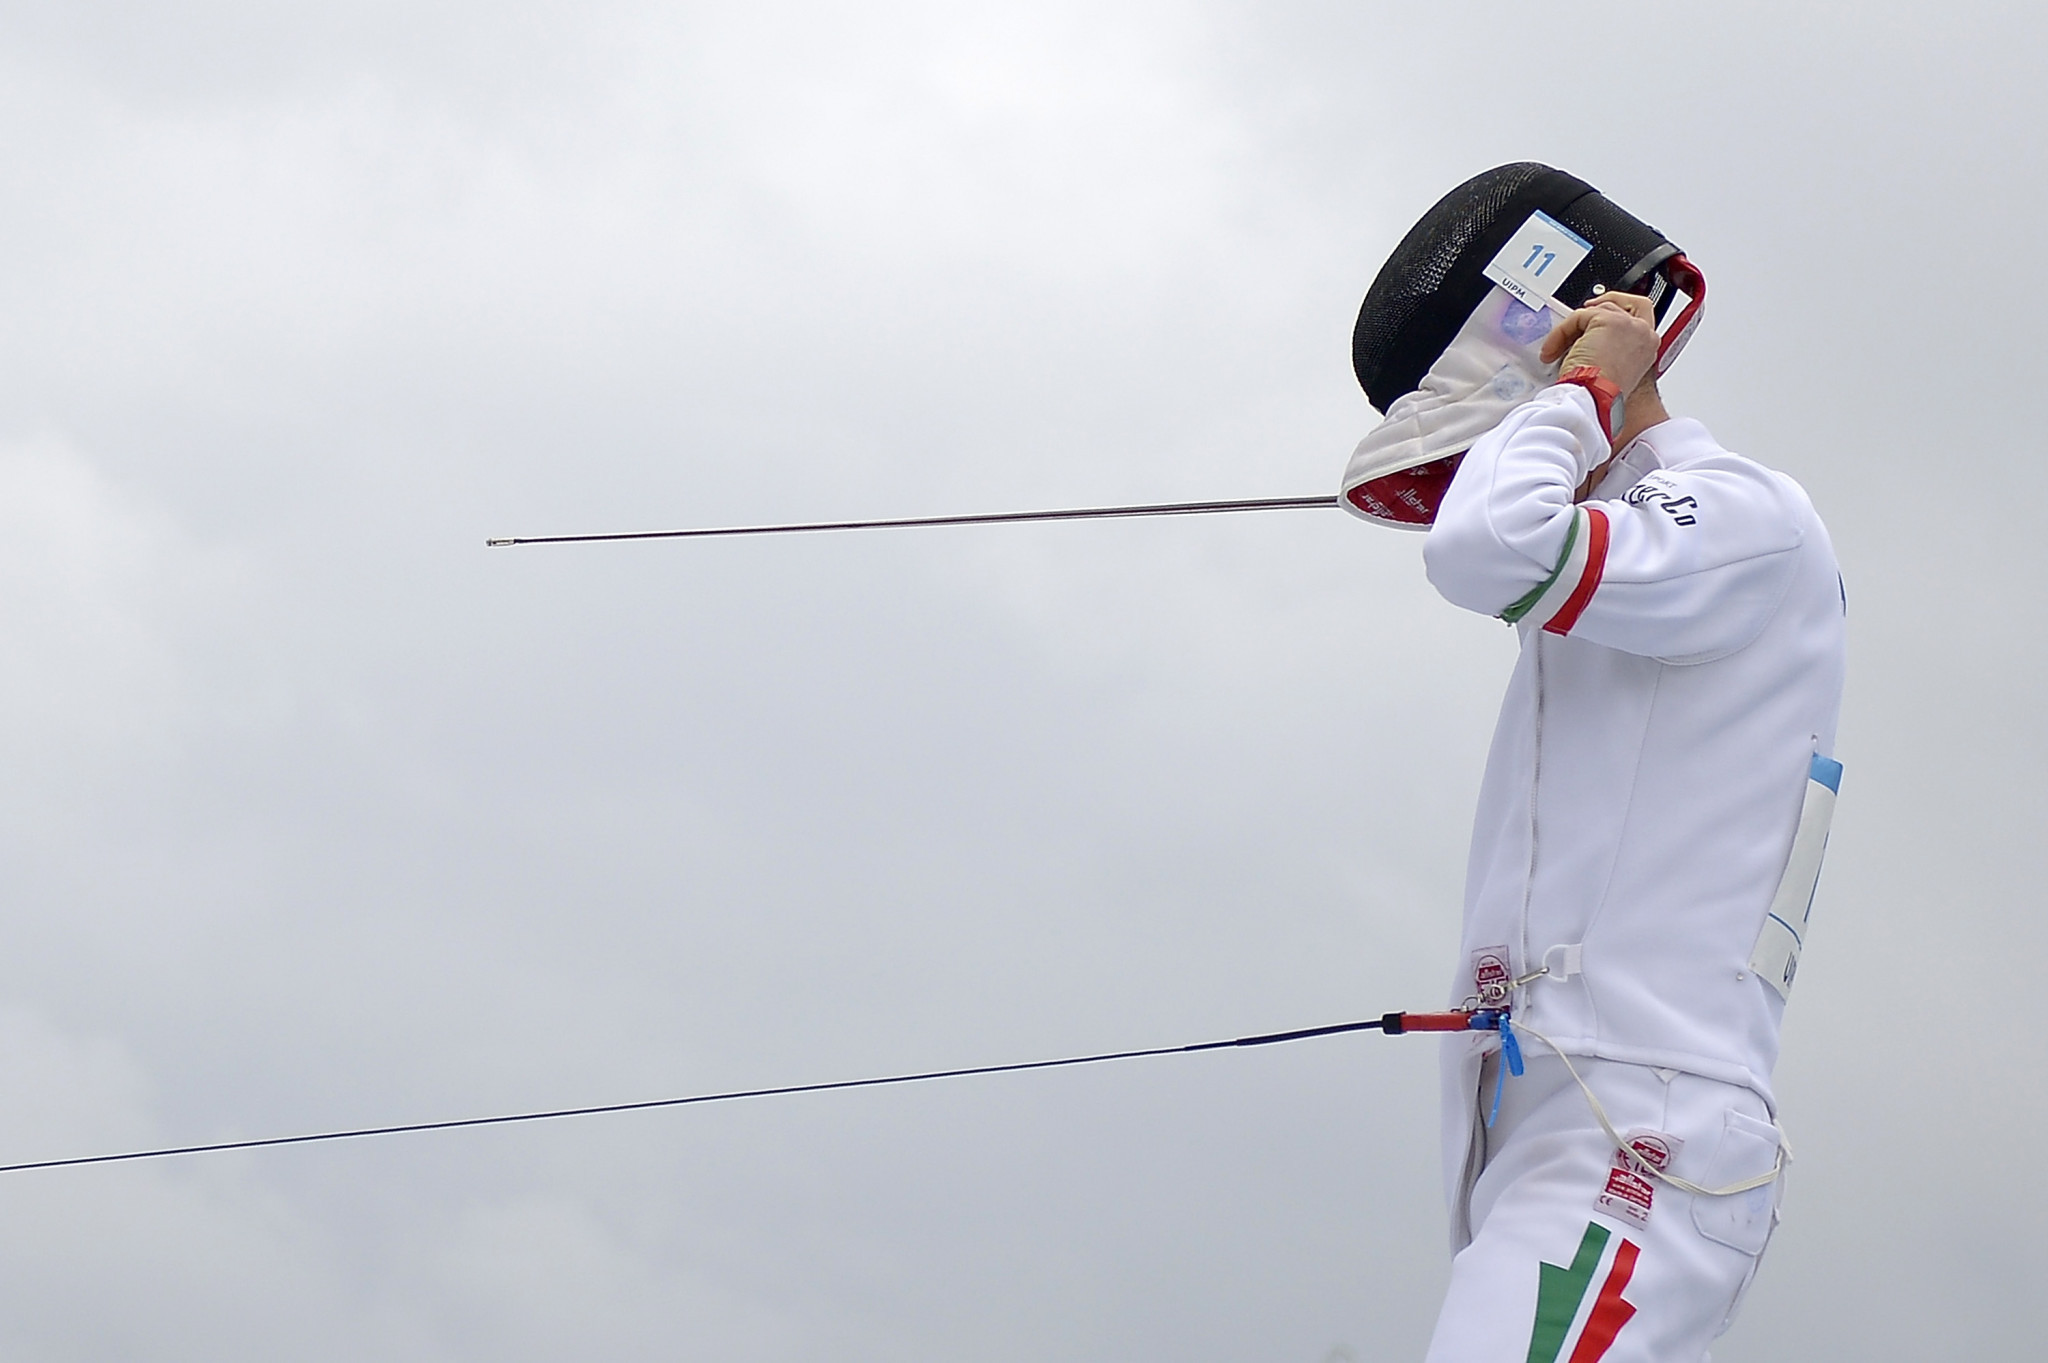 Hungarian veteran Marosi takes gold in men's final at UIPM World Cup